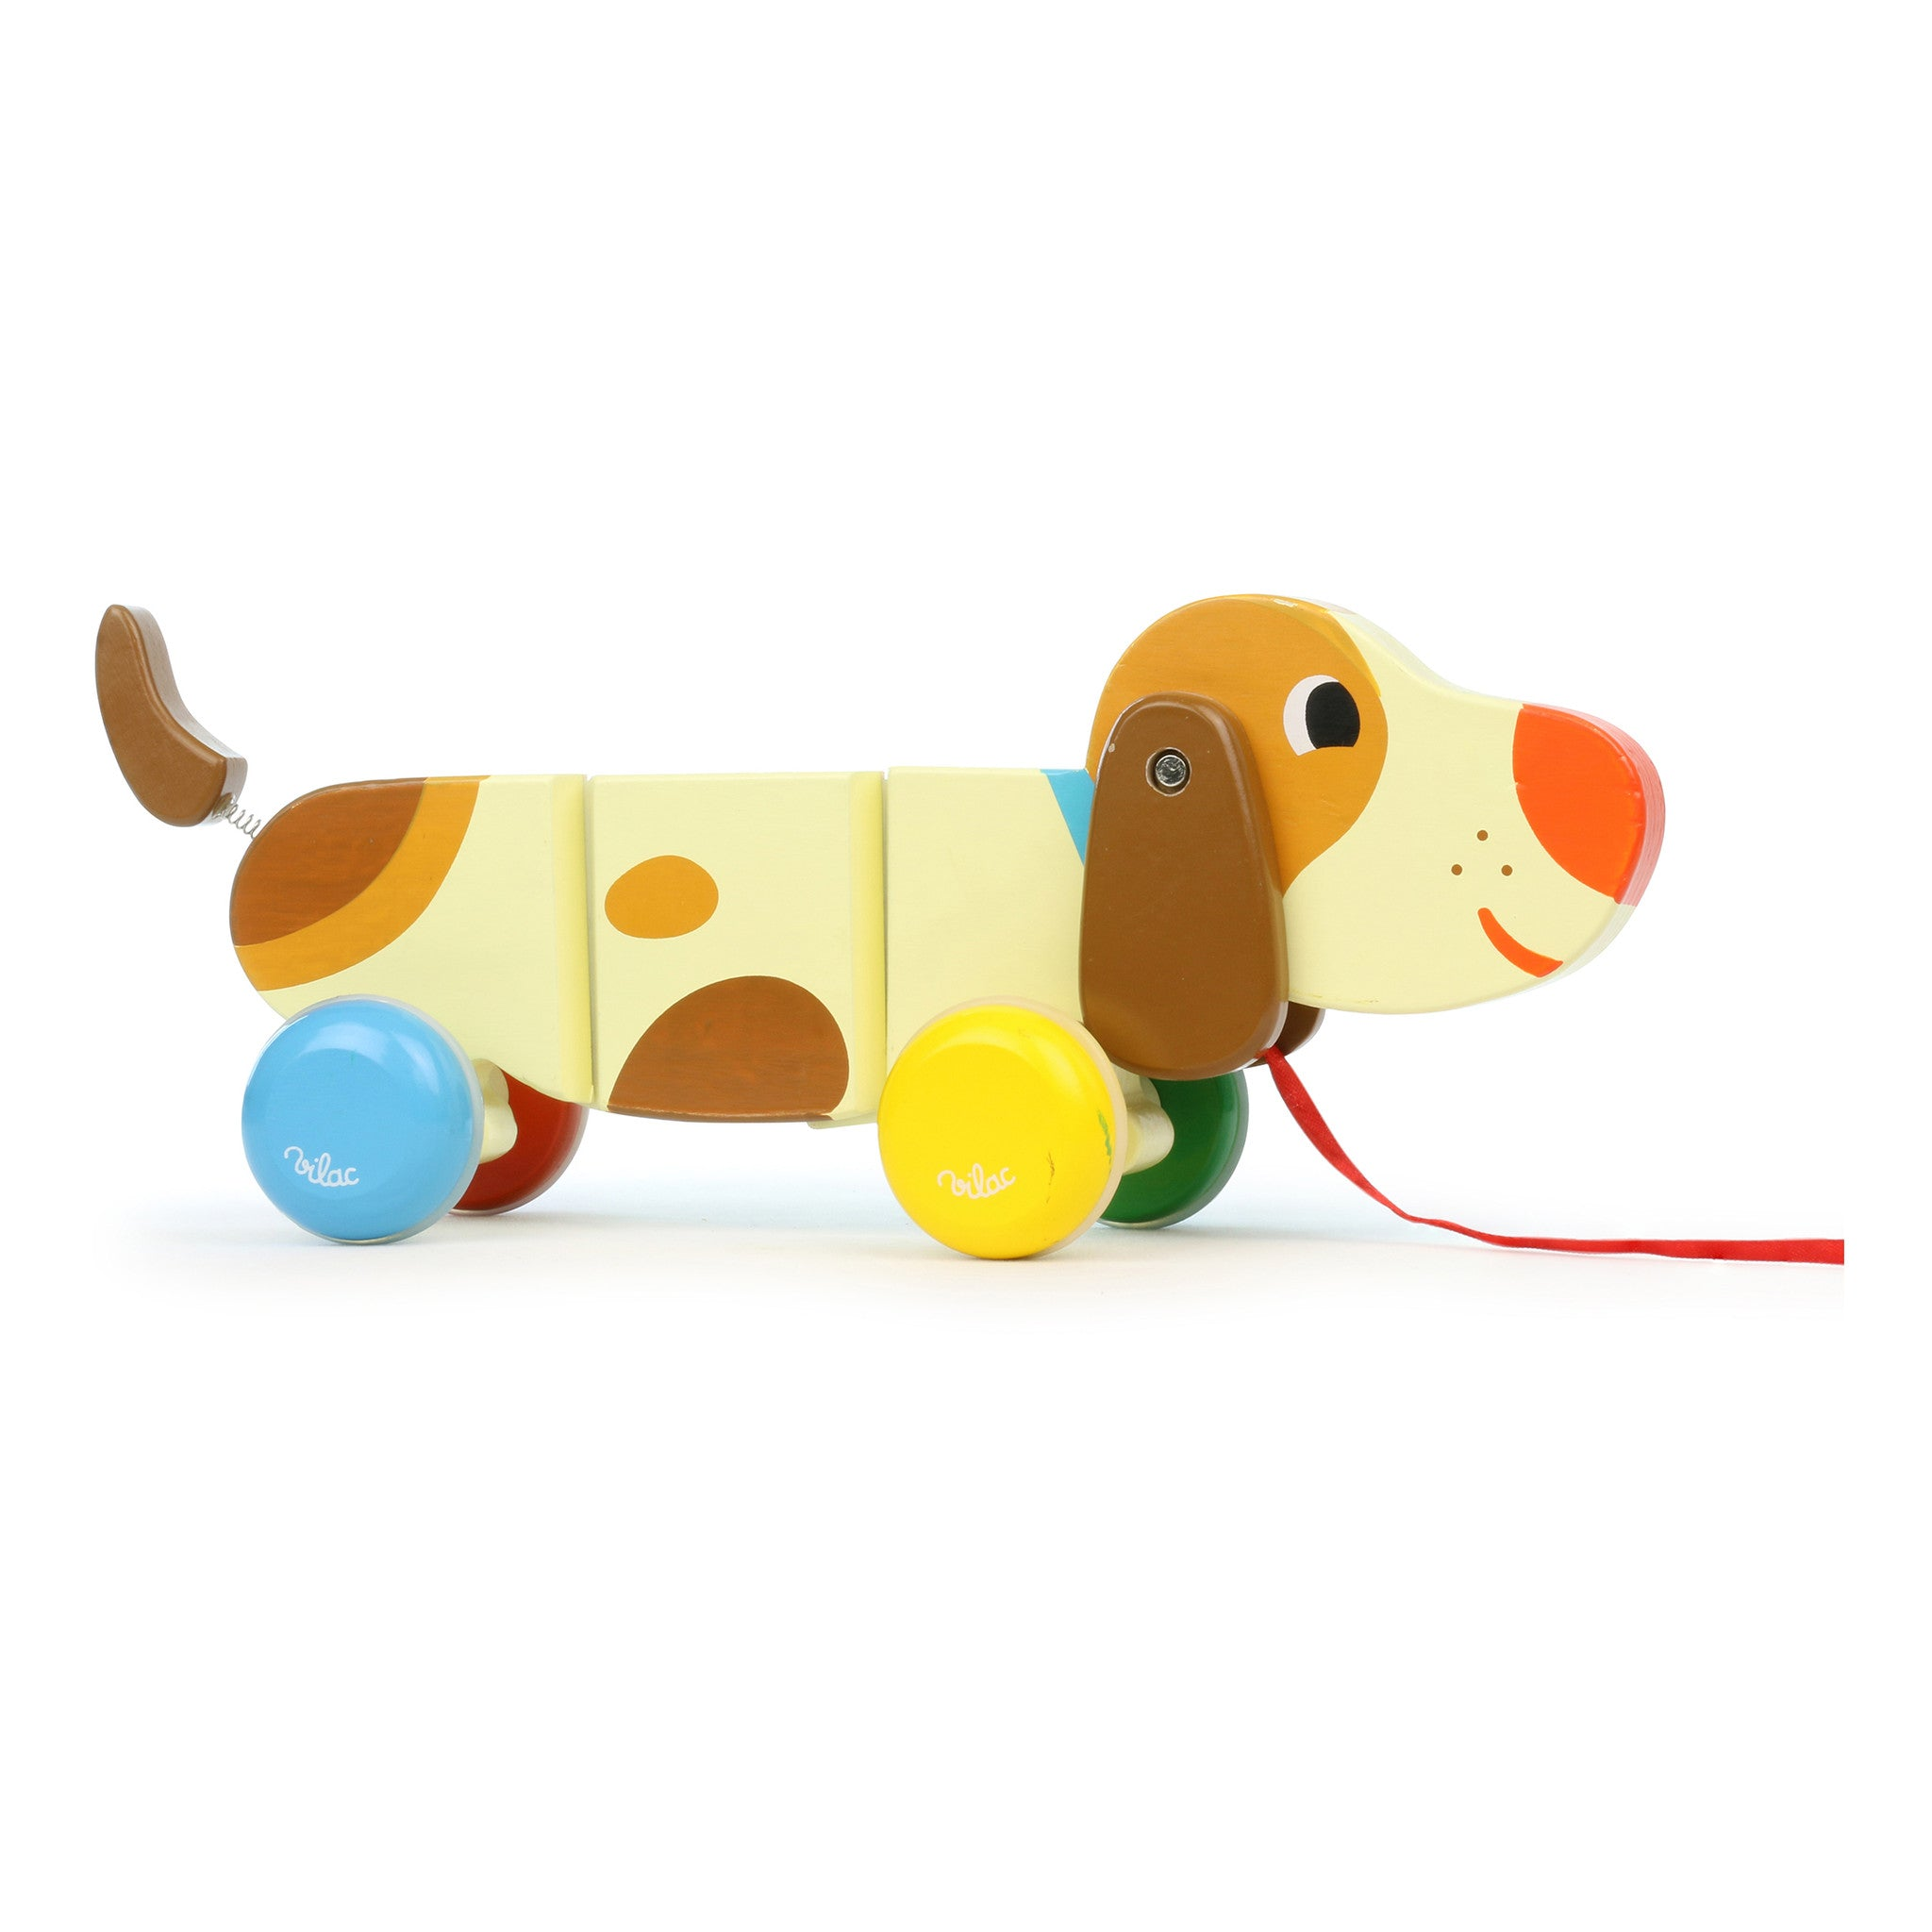 Basile the Dog Pull Along Toy by Vilac - Little Citizens Boutique  - 1